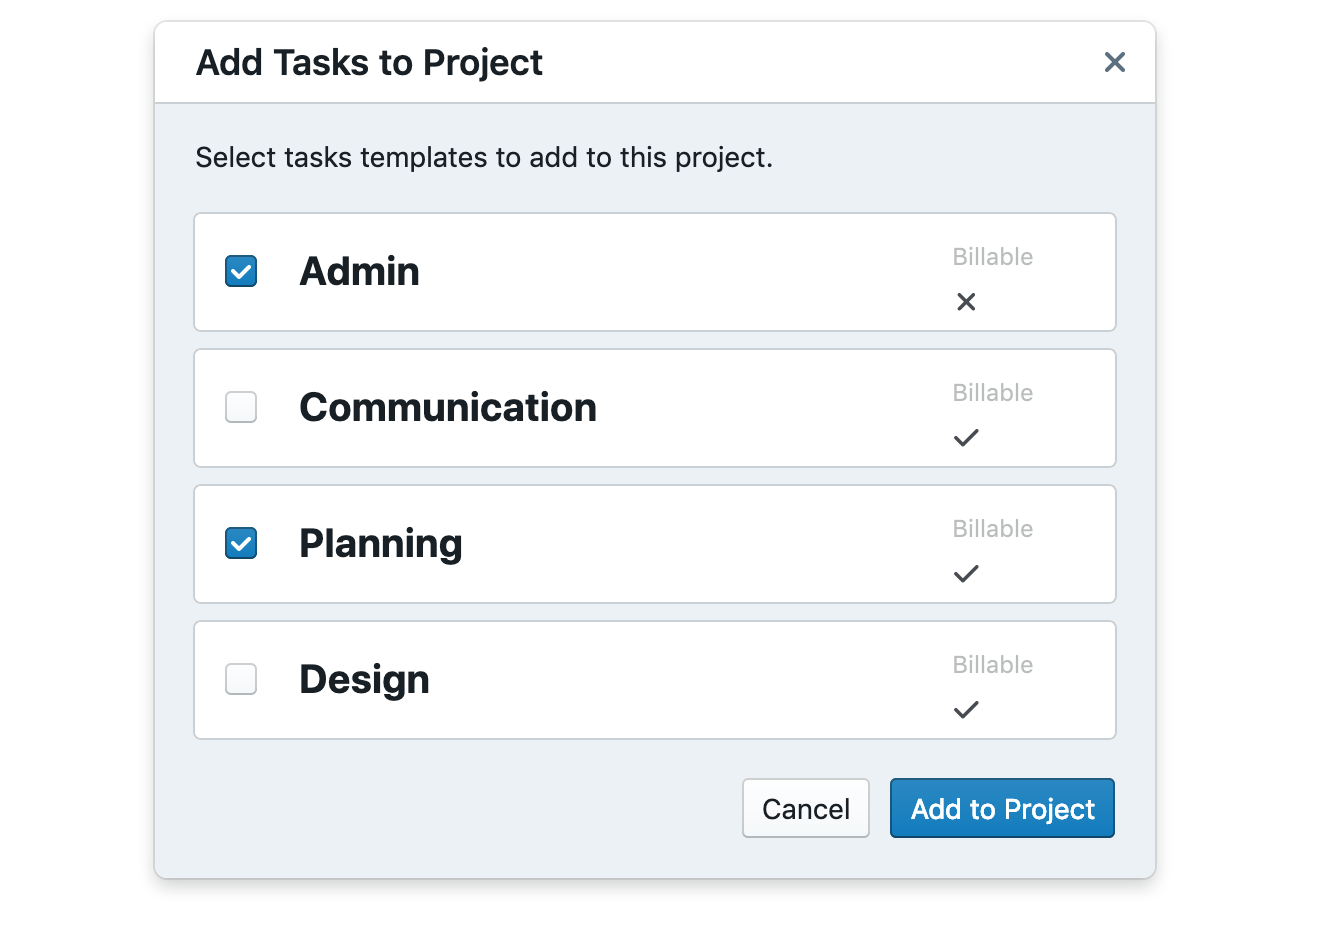 Quickly add tasks to your project